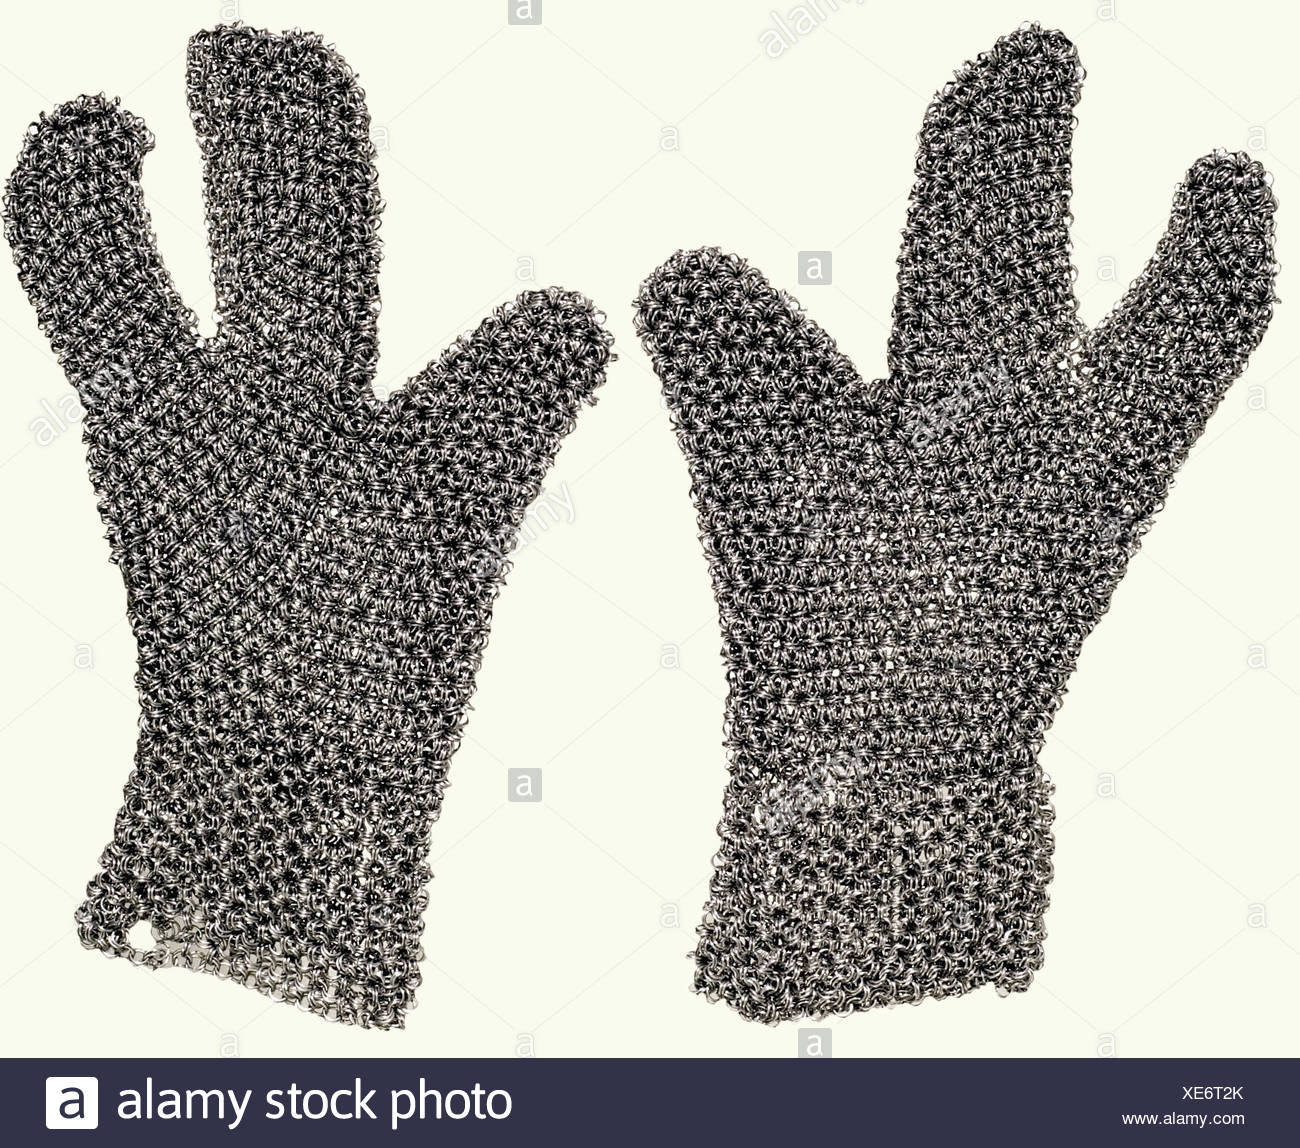 A set of chain mail, Southern Caucasus, 1st half of the 19th century. Hauberk, coif, and gloves, made of mail of different strengths. The rings are not riveted, and in the oriental fashion are always hung on six sides of a central double ring. Short shirt with long sleeves of extremely heavy mail. The interior of the sleeve has been lightly worked. The lower edge is scalloped. Isolated defects. The coif has a heavy calotte and lighter sides and collar. Three-fingered gloves. Length of the hauberk, ca. 68 cm. Extremely high quality workmanship on the hauberk, wh, Additional-Rights-Clearances-NA - Stock Image